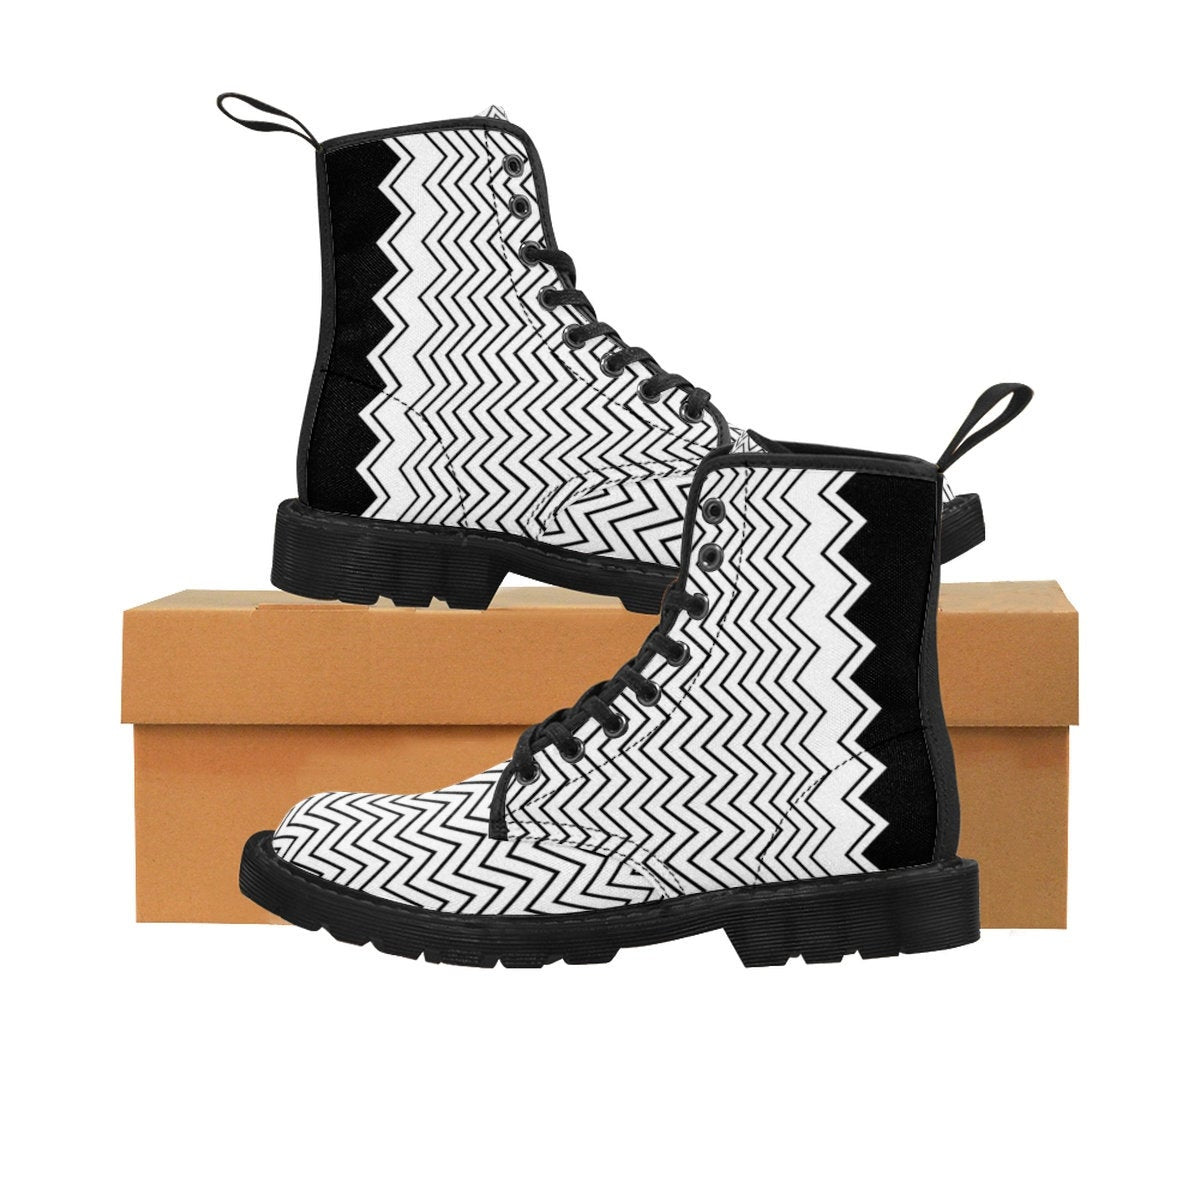 Women's Special Pop Art High top Canvas Shoes. Black & White Women's Military Boots. Unique Lace Up Boots. Modern Art New fashion Shoes.